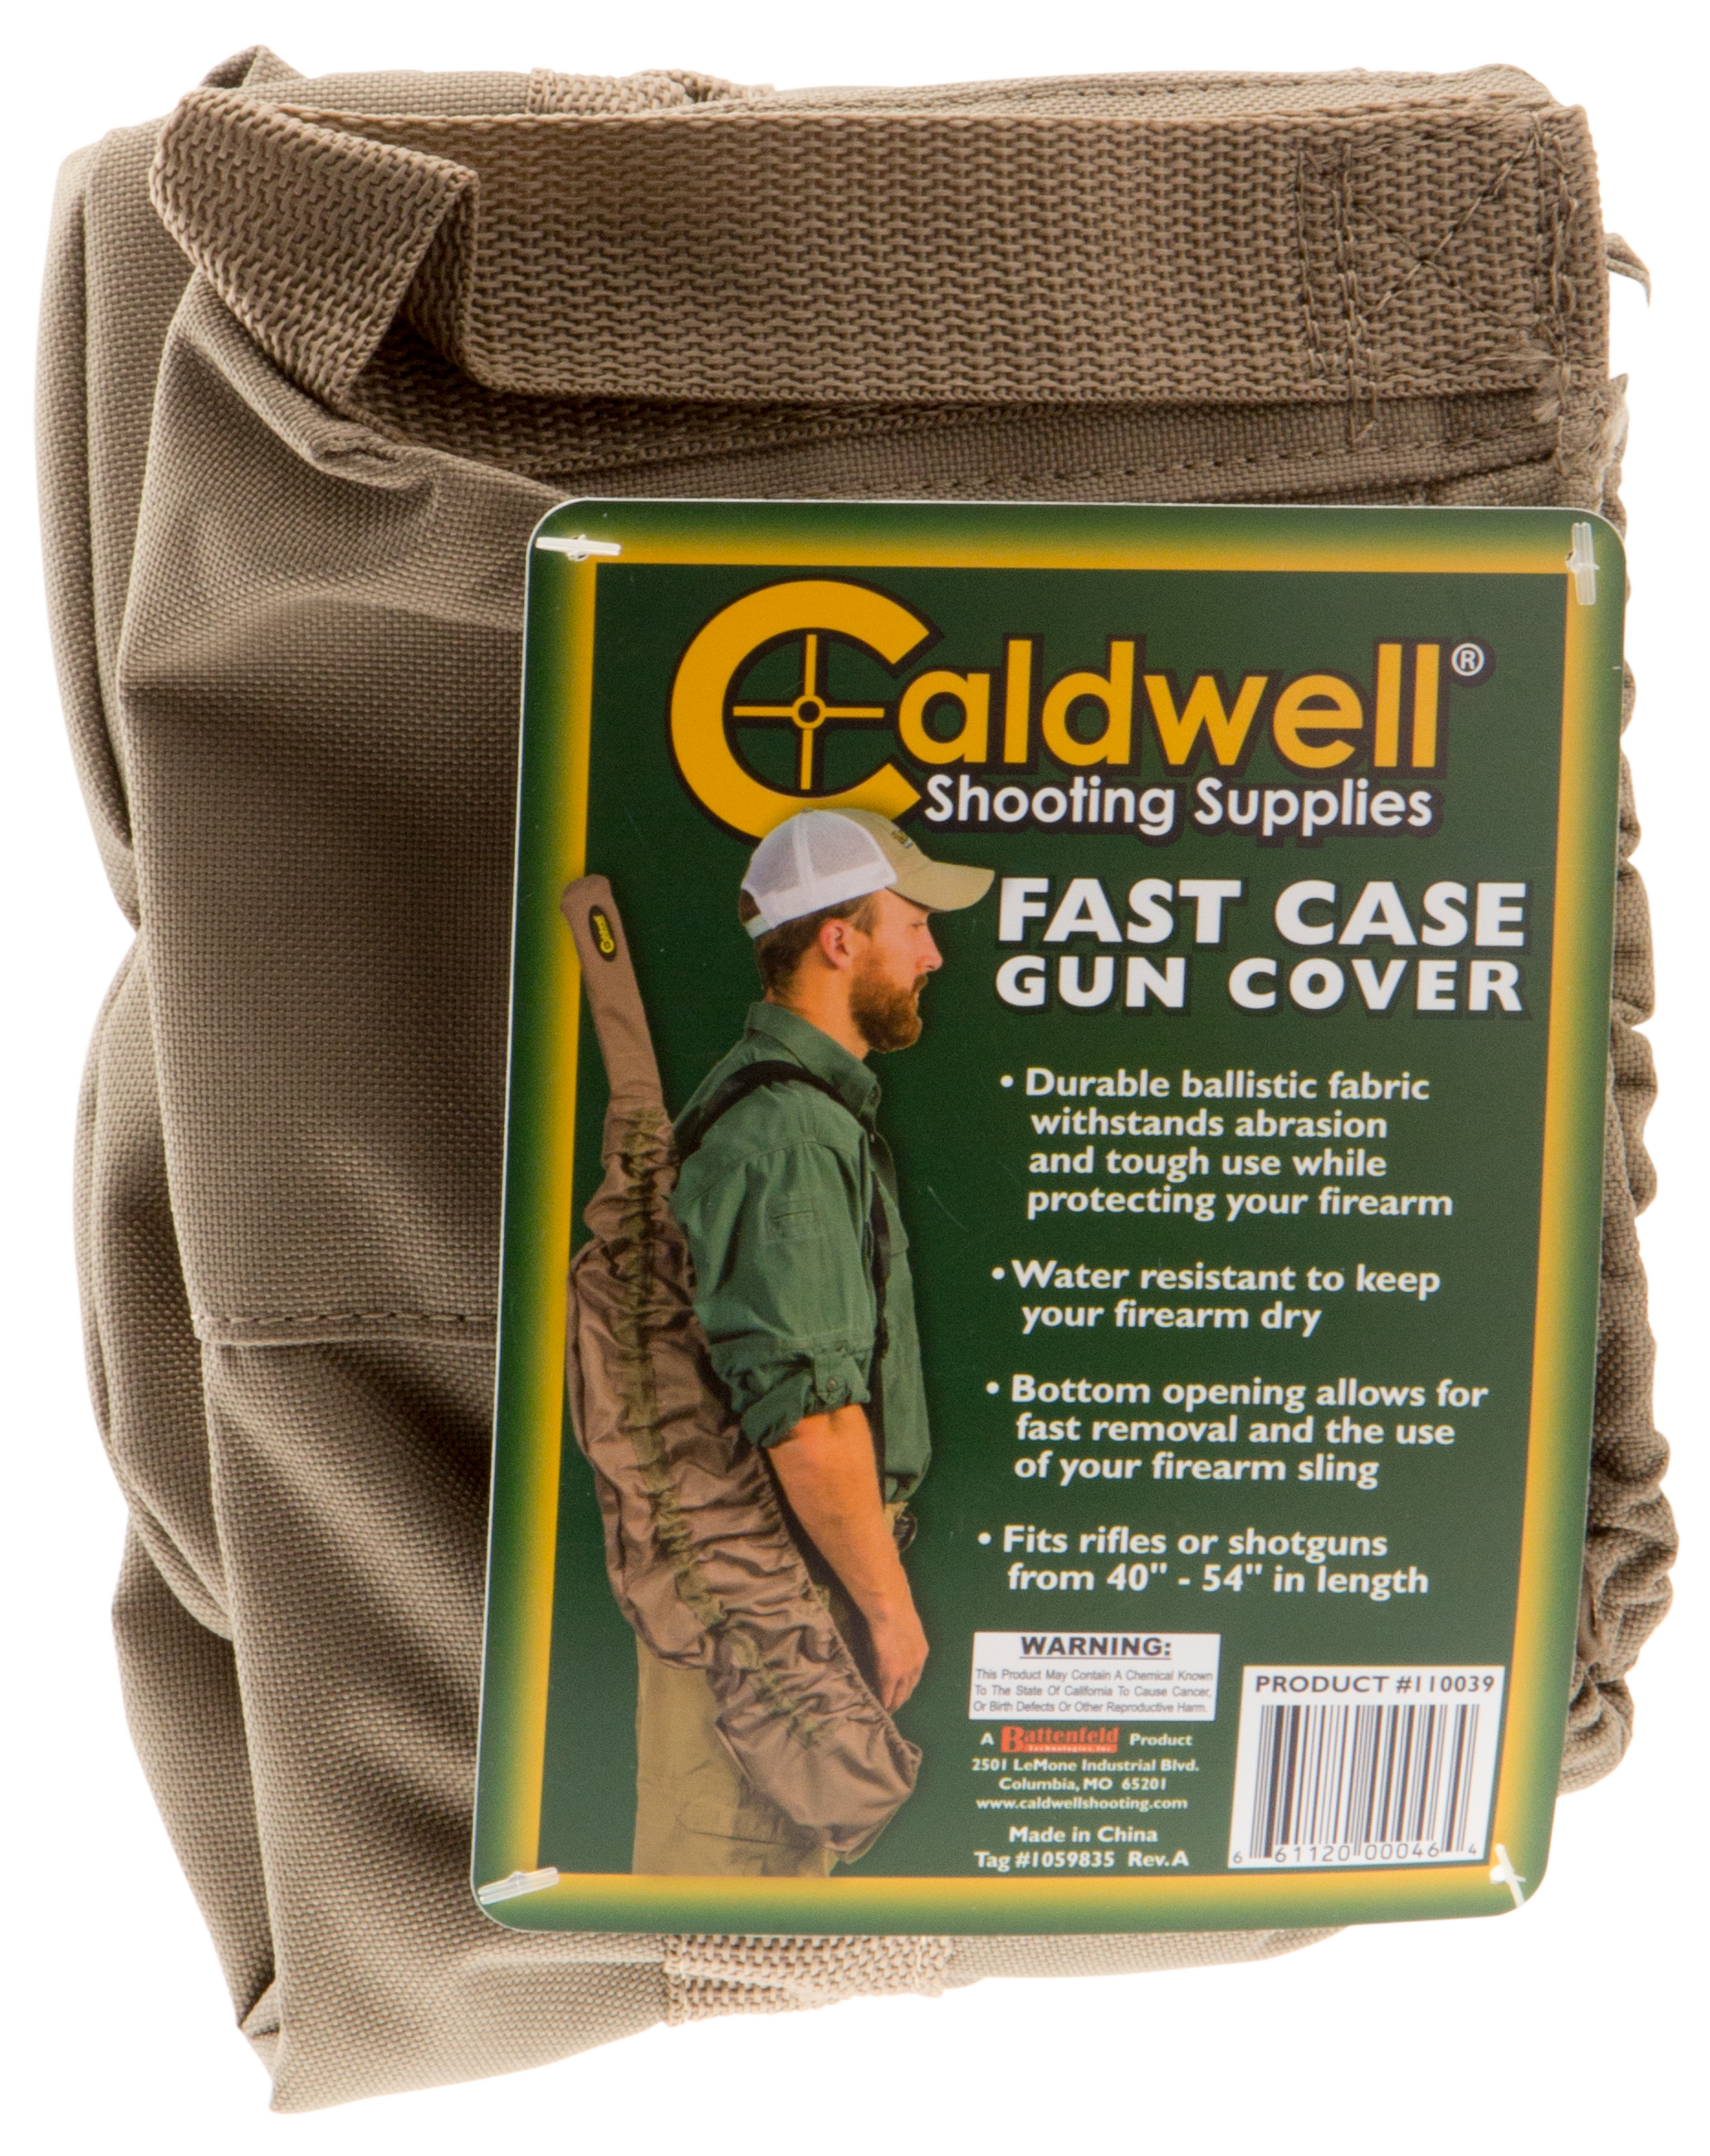 Caldwell 110039 Fast Case Rifle/Shotgun Cover